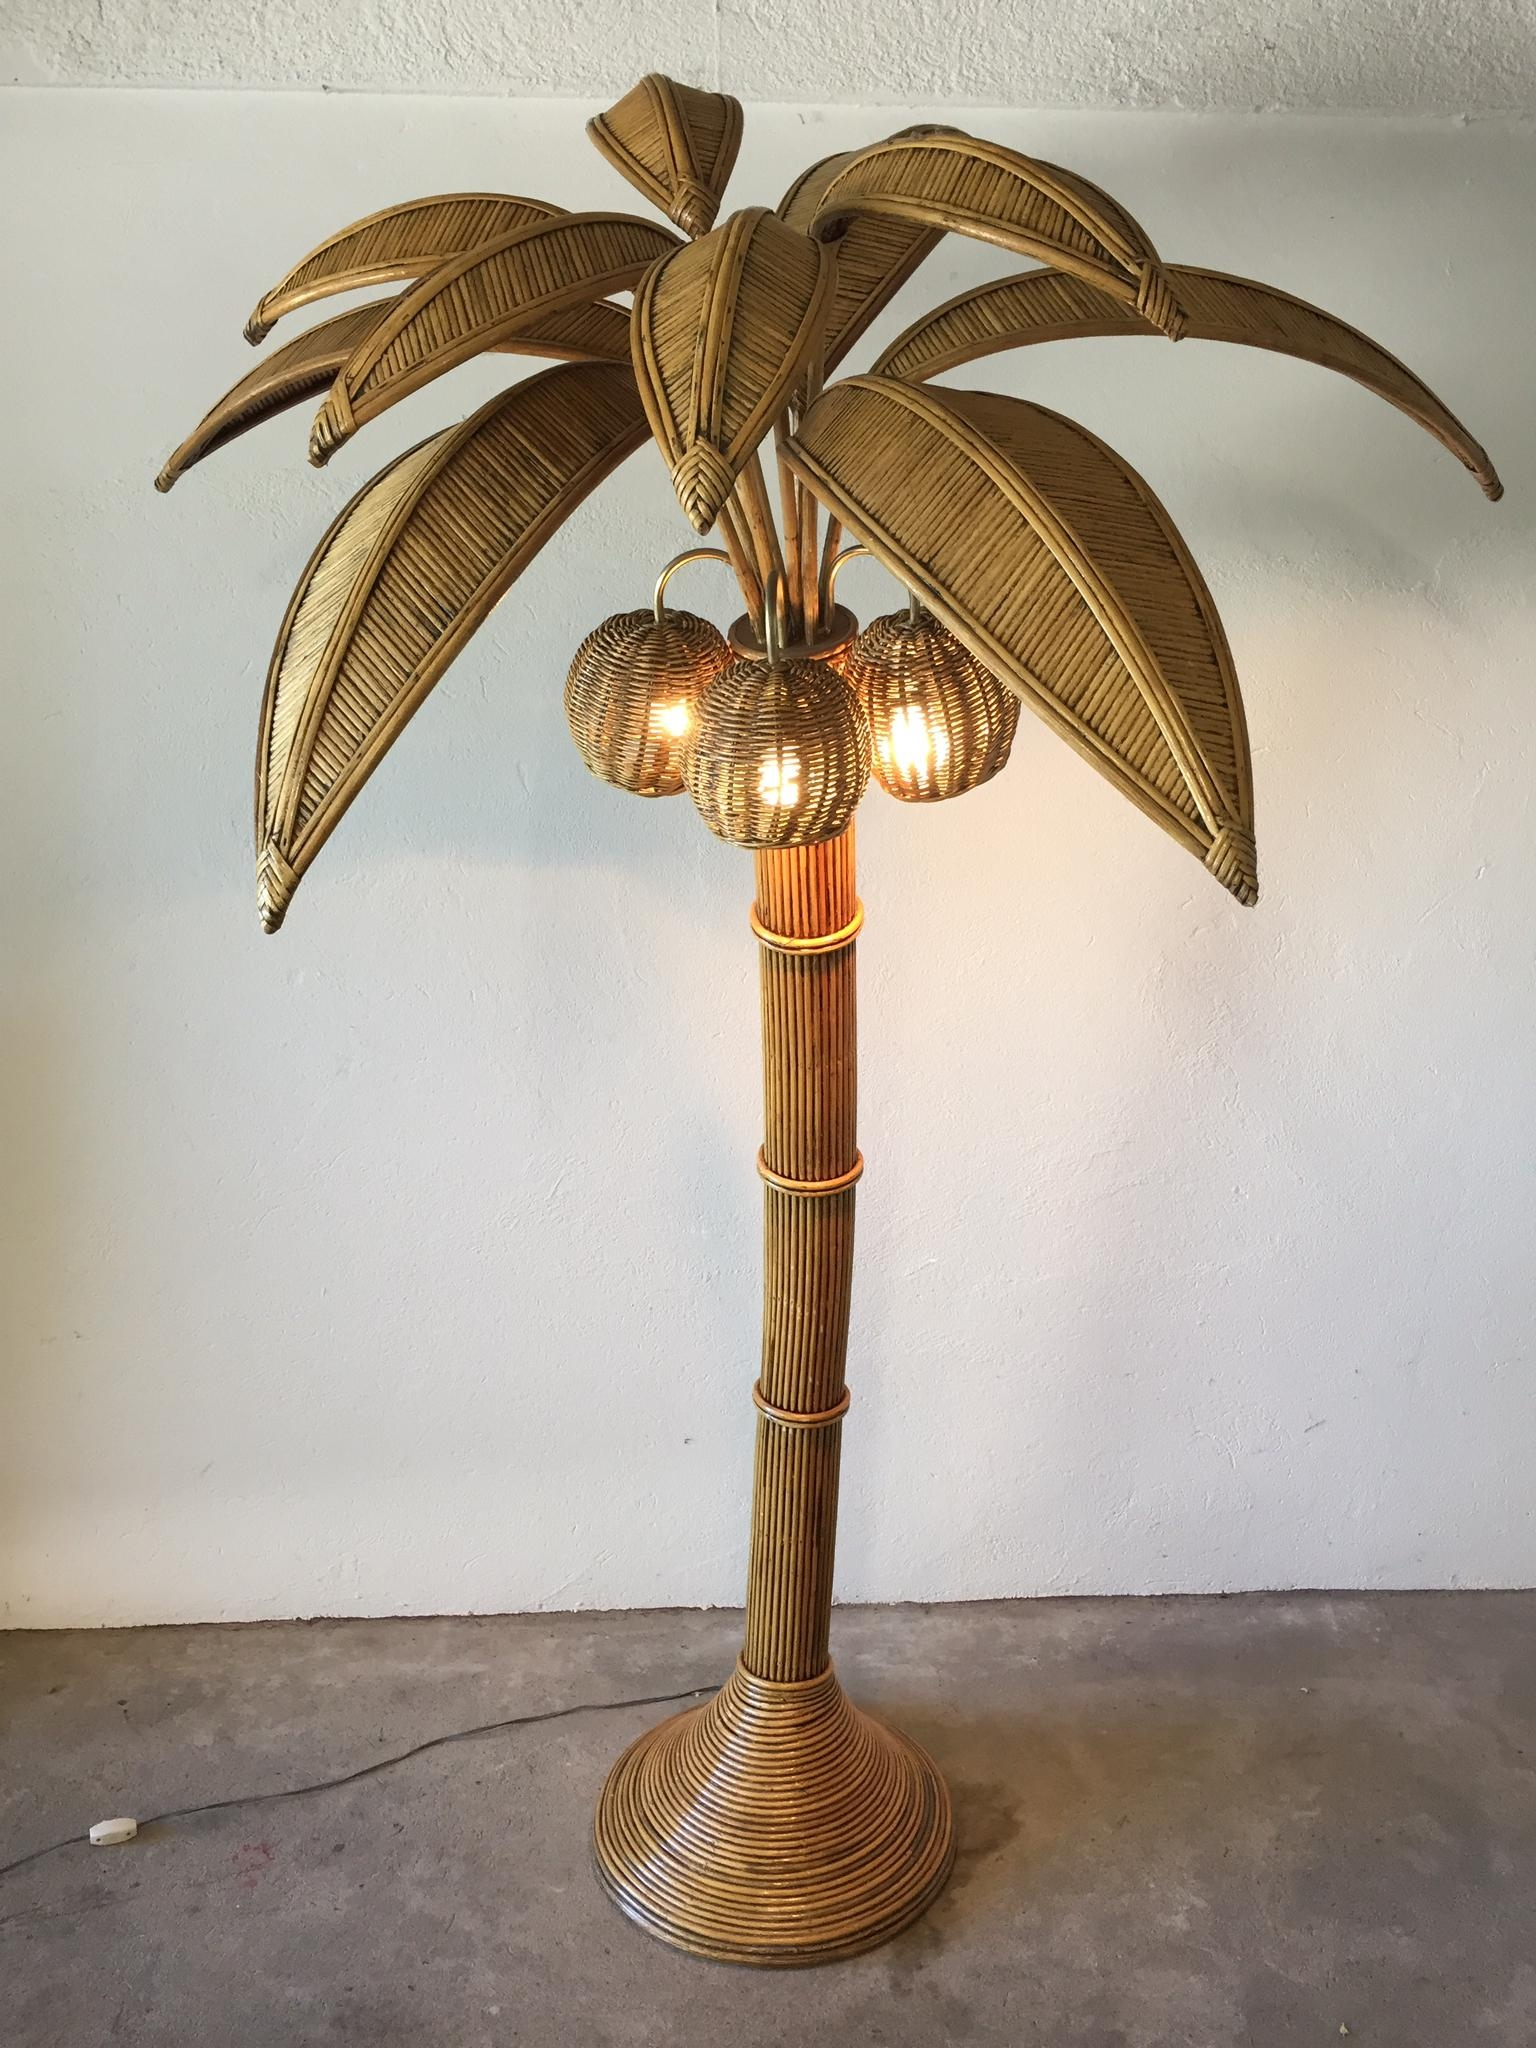 palm-tree-floor-lamp-by-mario-lopez-torres-1970-image-02